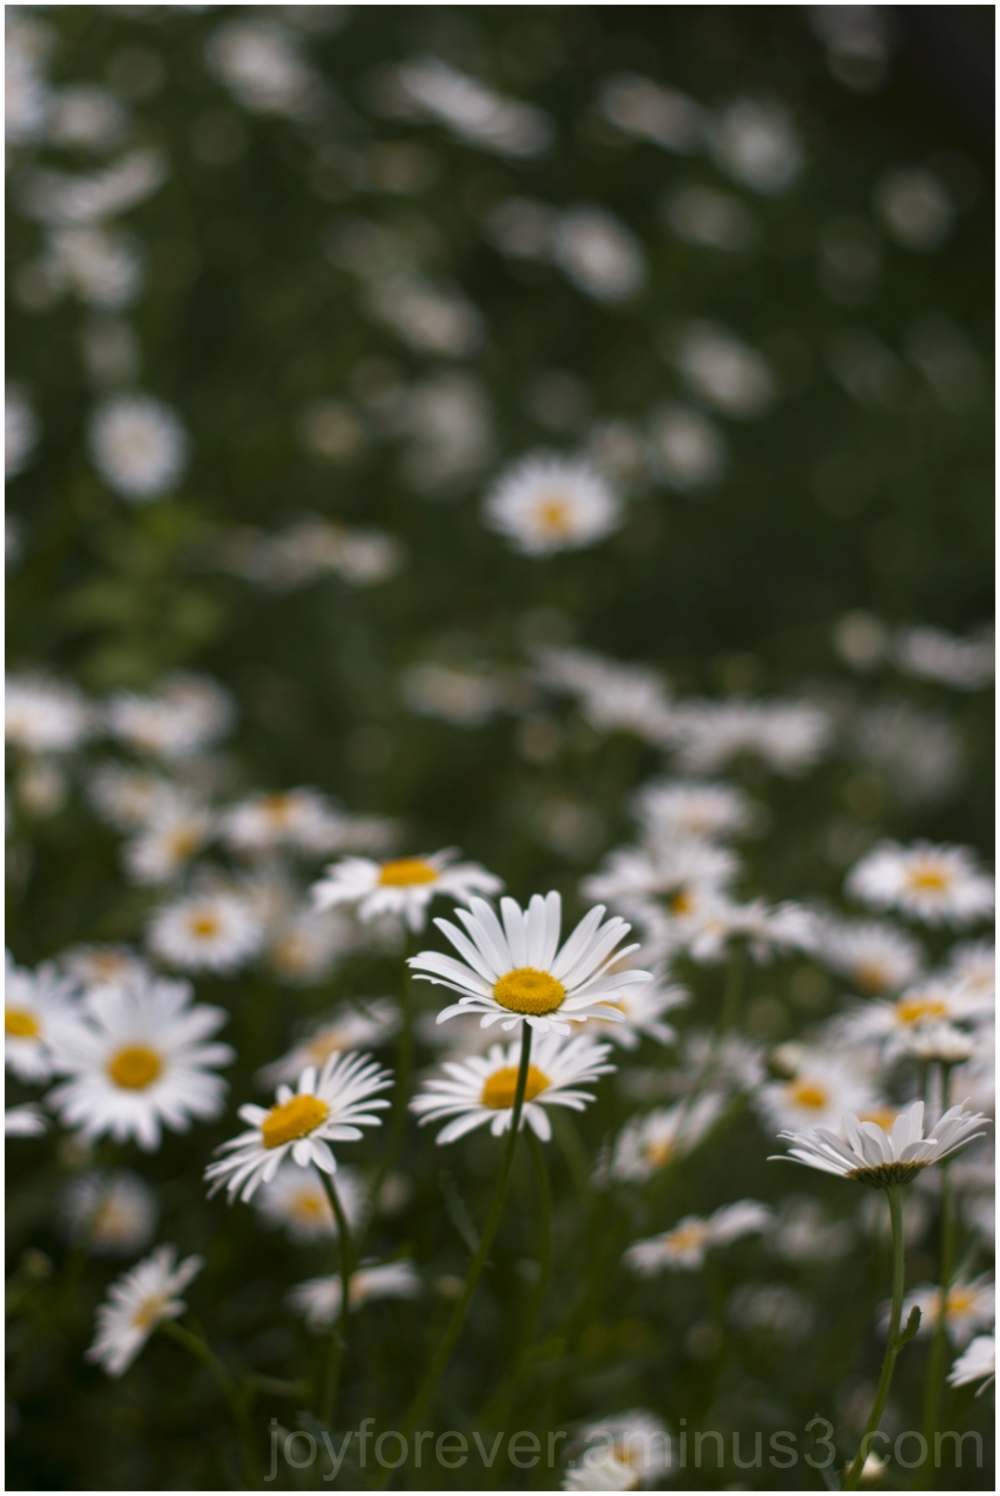 flower daisy white yellow spring summer plant